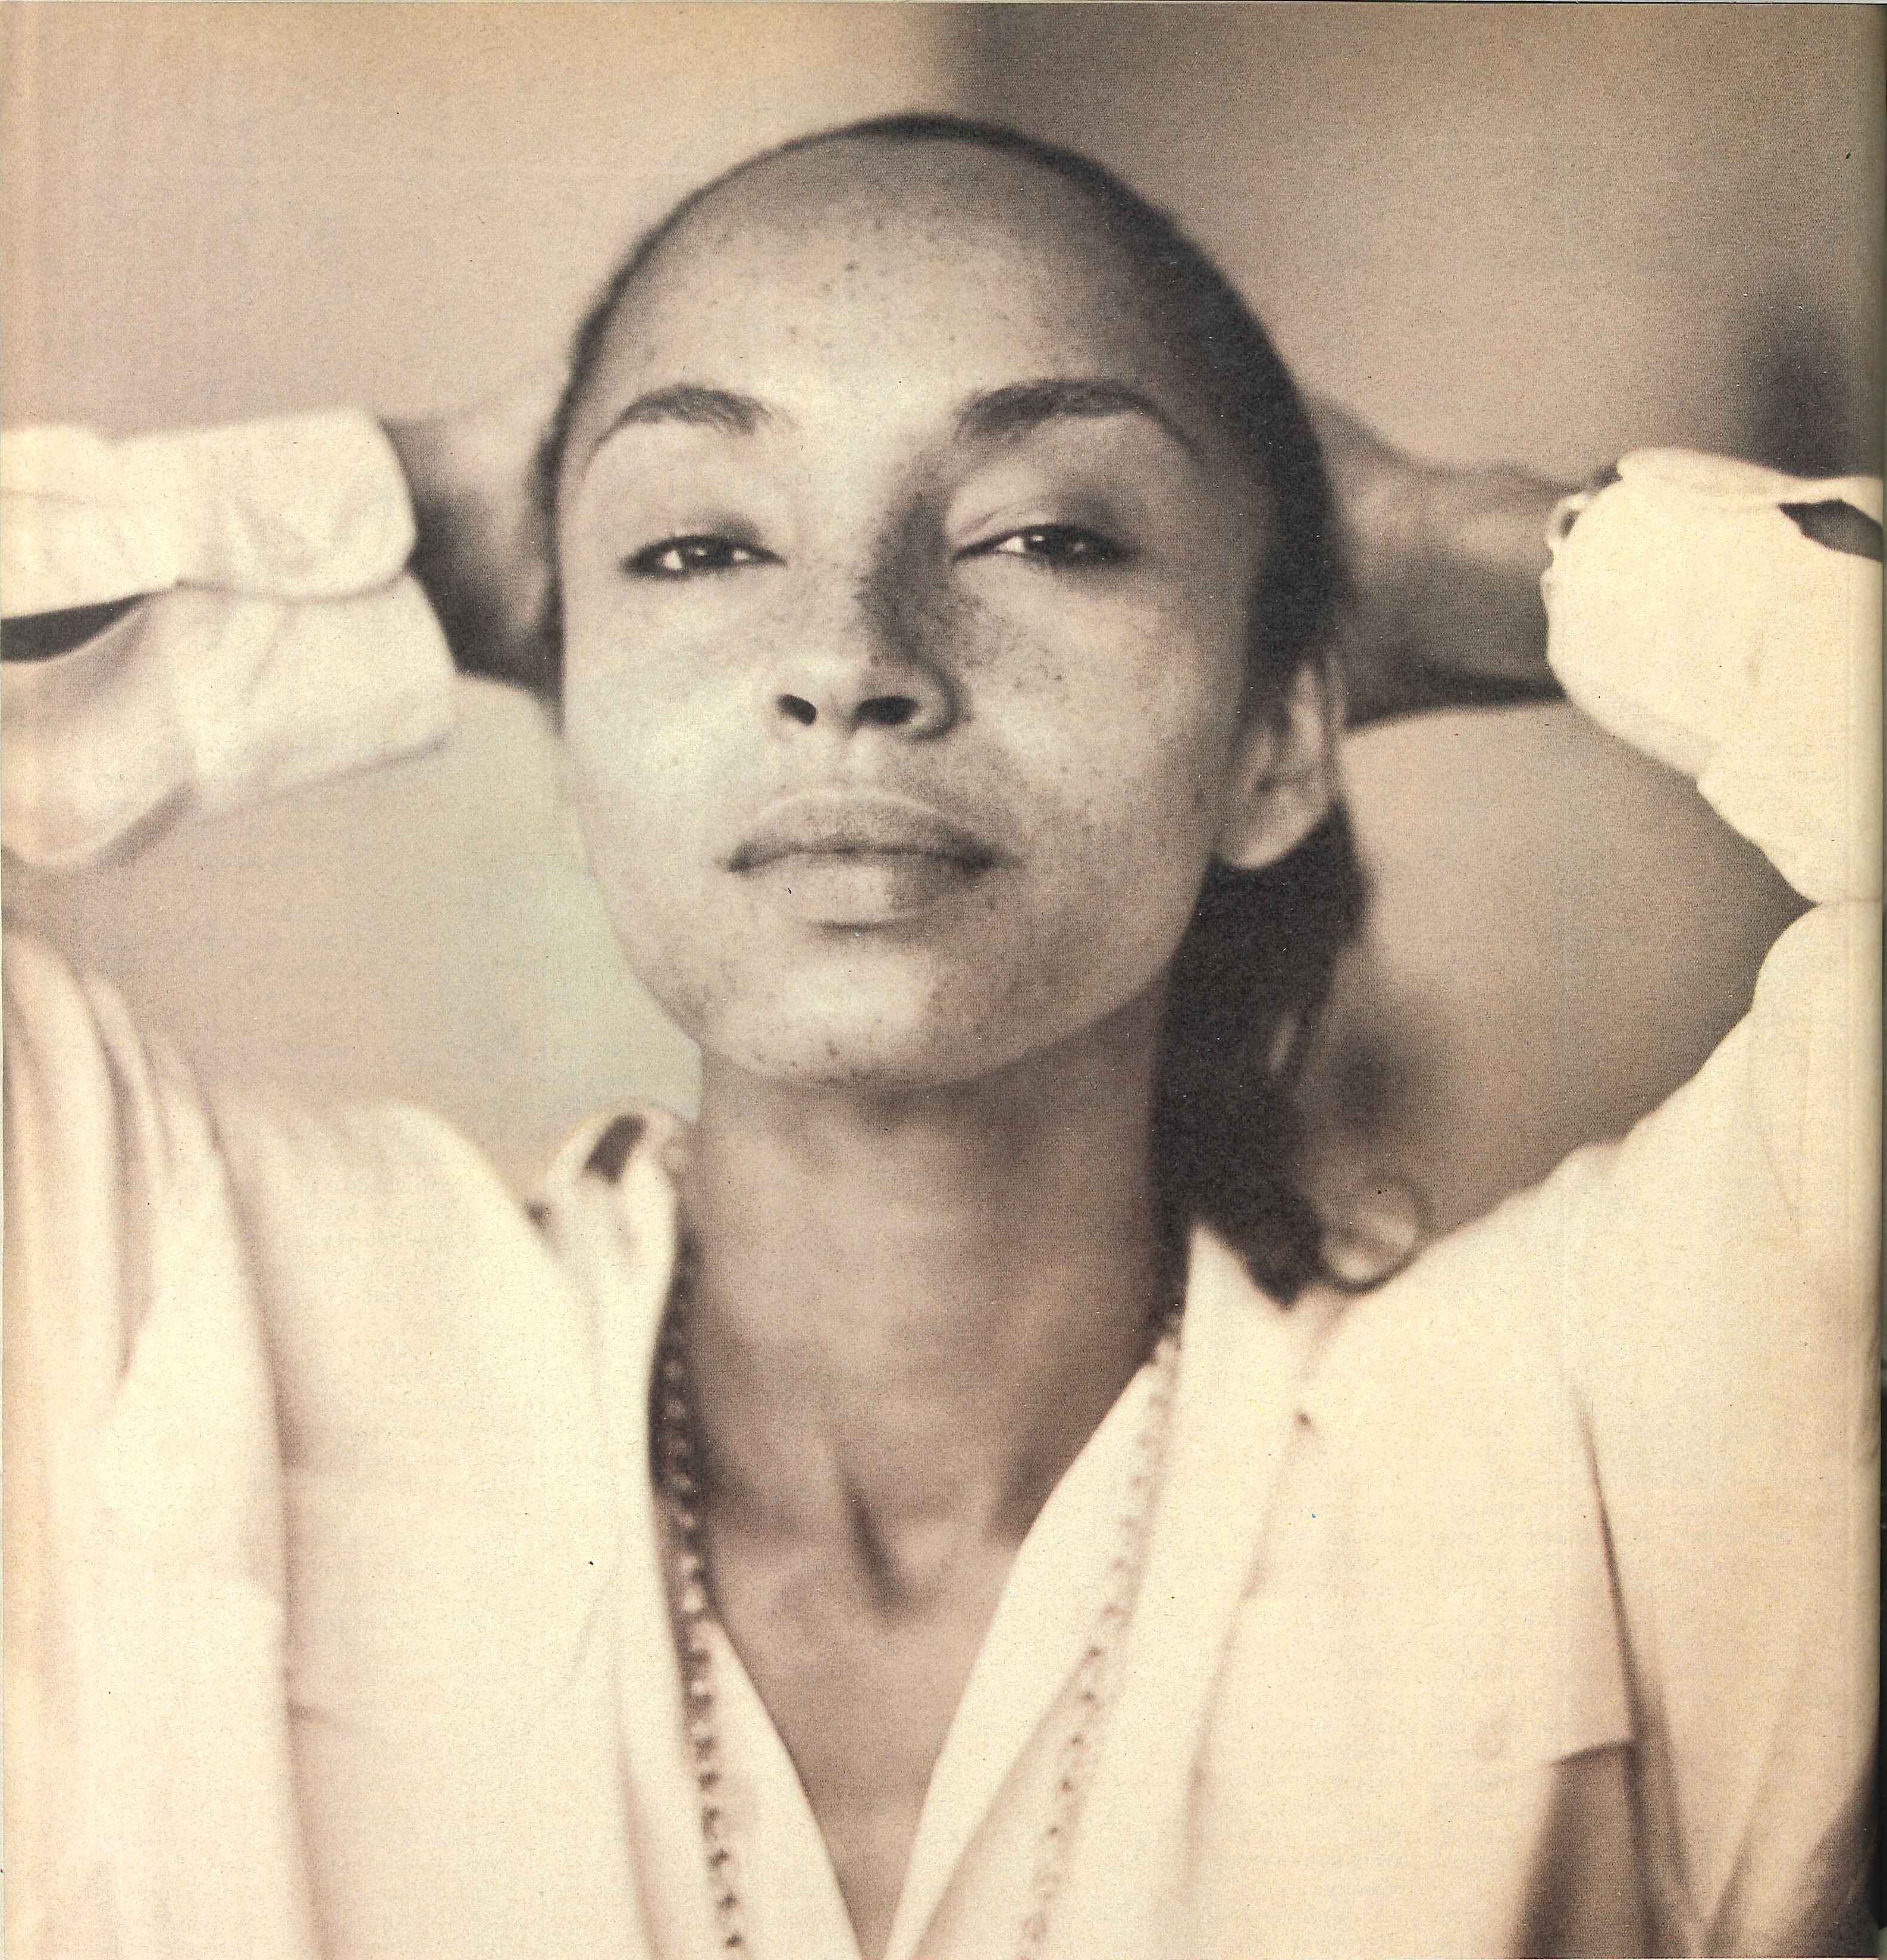 Incredible The 1988 Cover Story With Lady Sade Elusive Pop Diva Download Free Architecture Designs Scobabritishbridgeorg